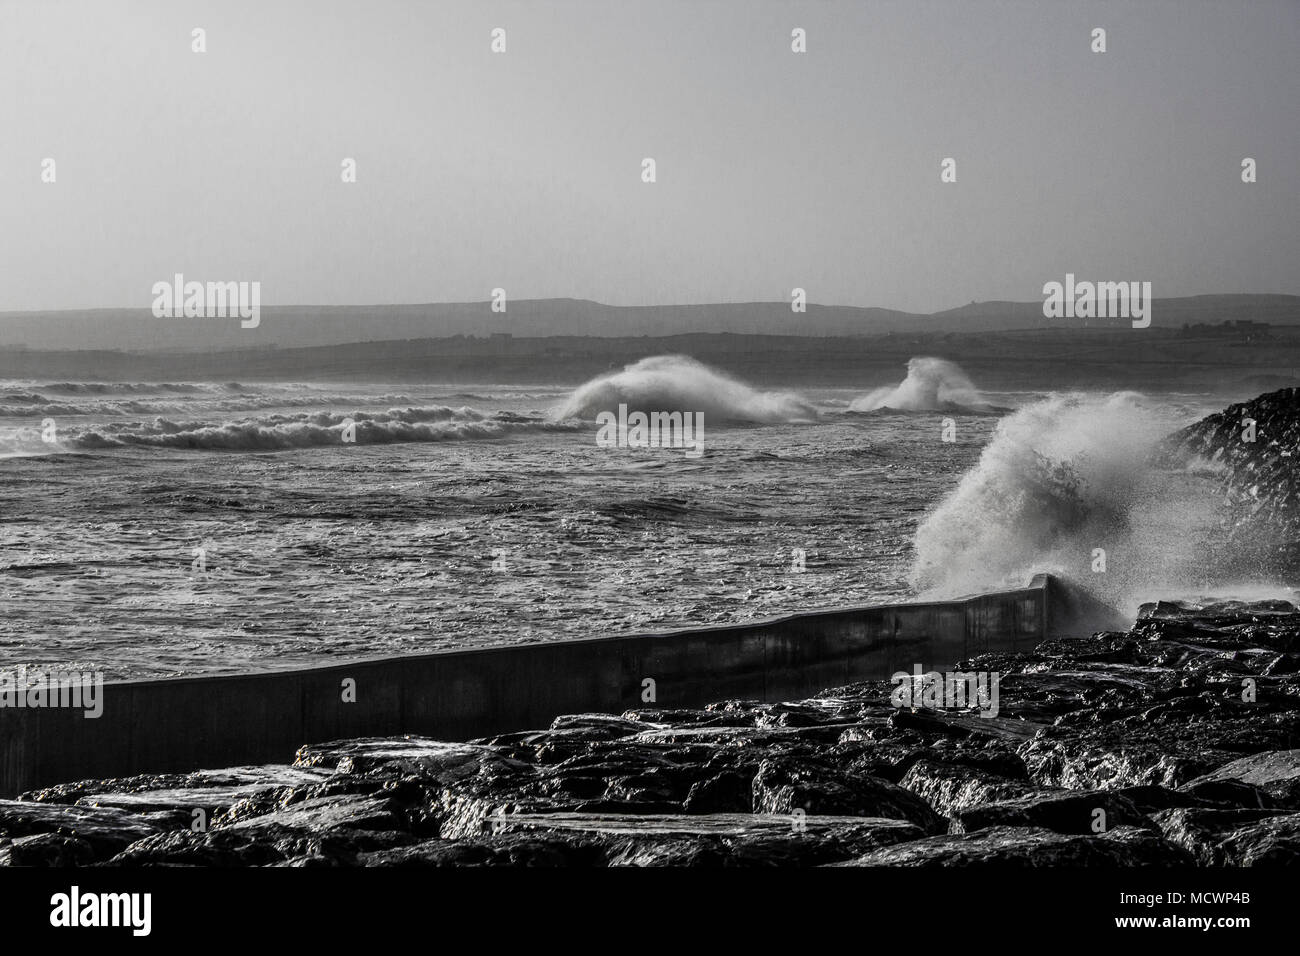 Waves crashing into wall at Lahinch beach during high tide black and white - Stock Image